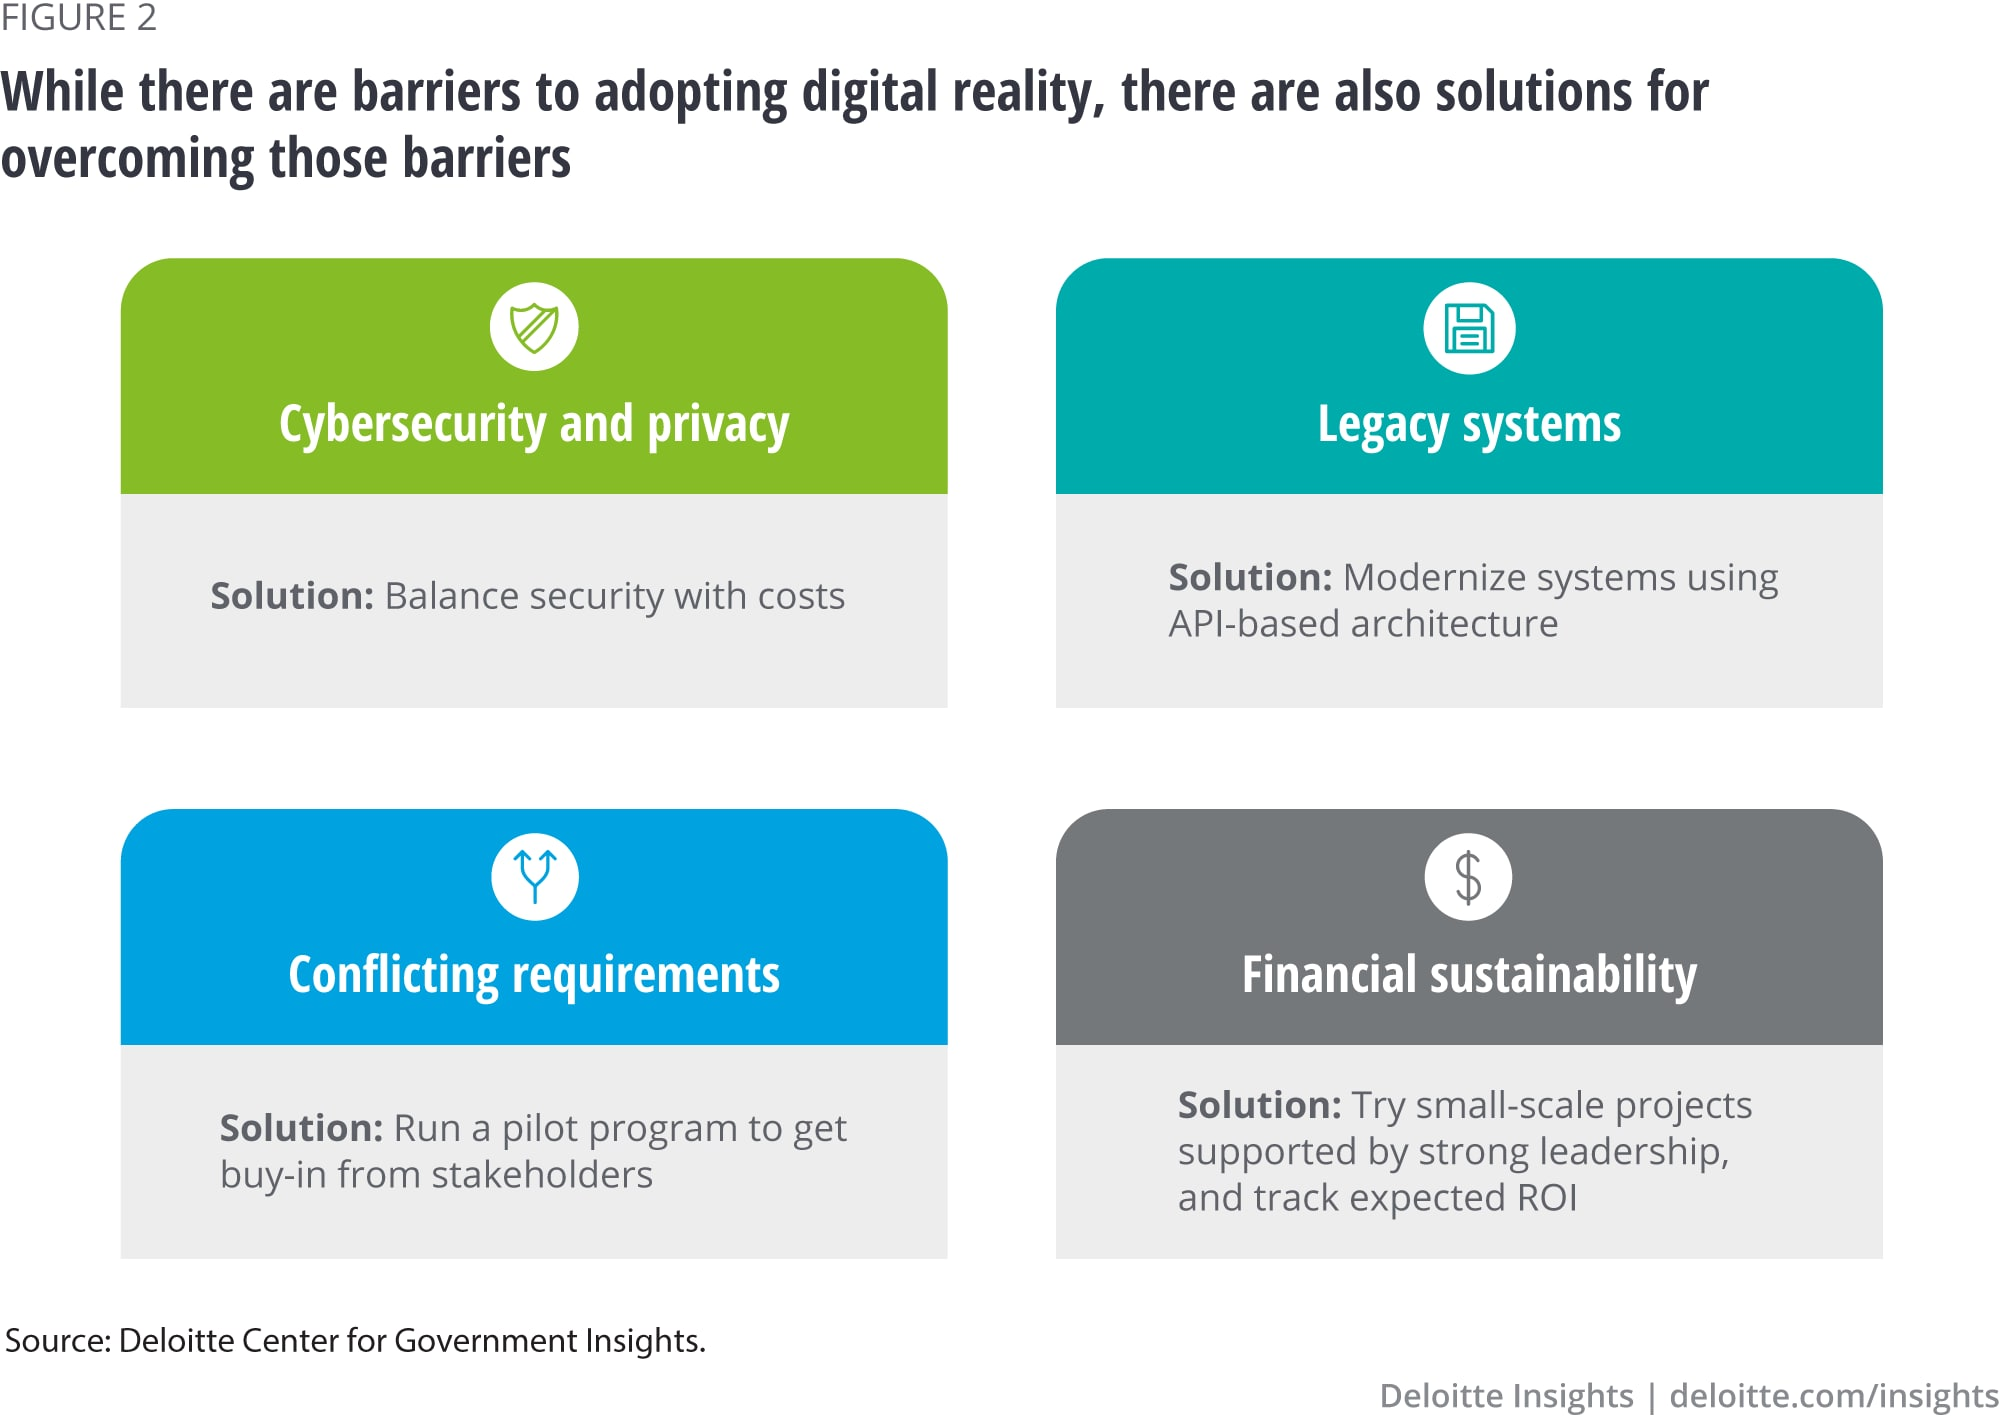 While there are barriers to adopting digital reality, there are also solutions for overcoming those barriers